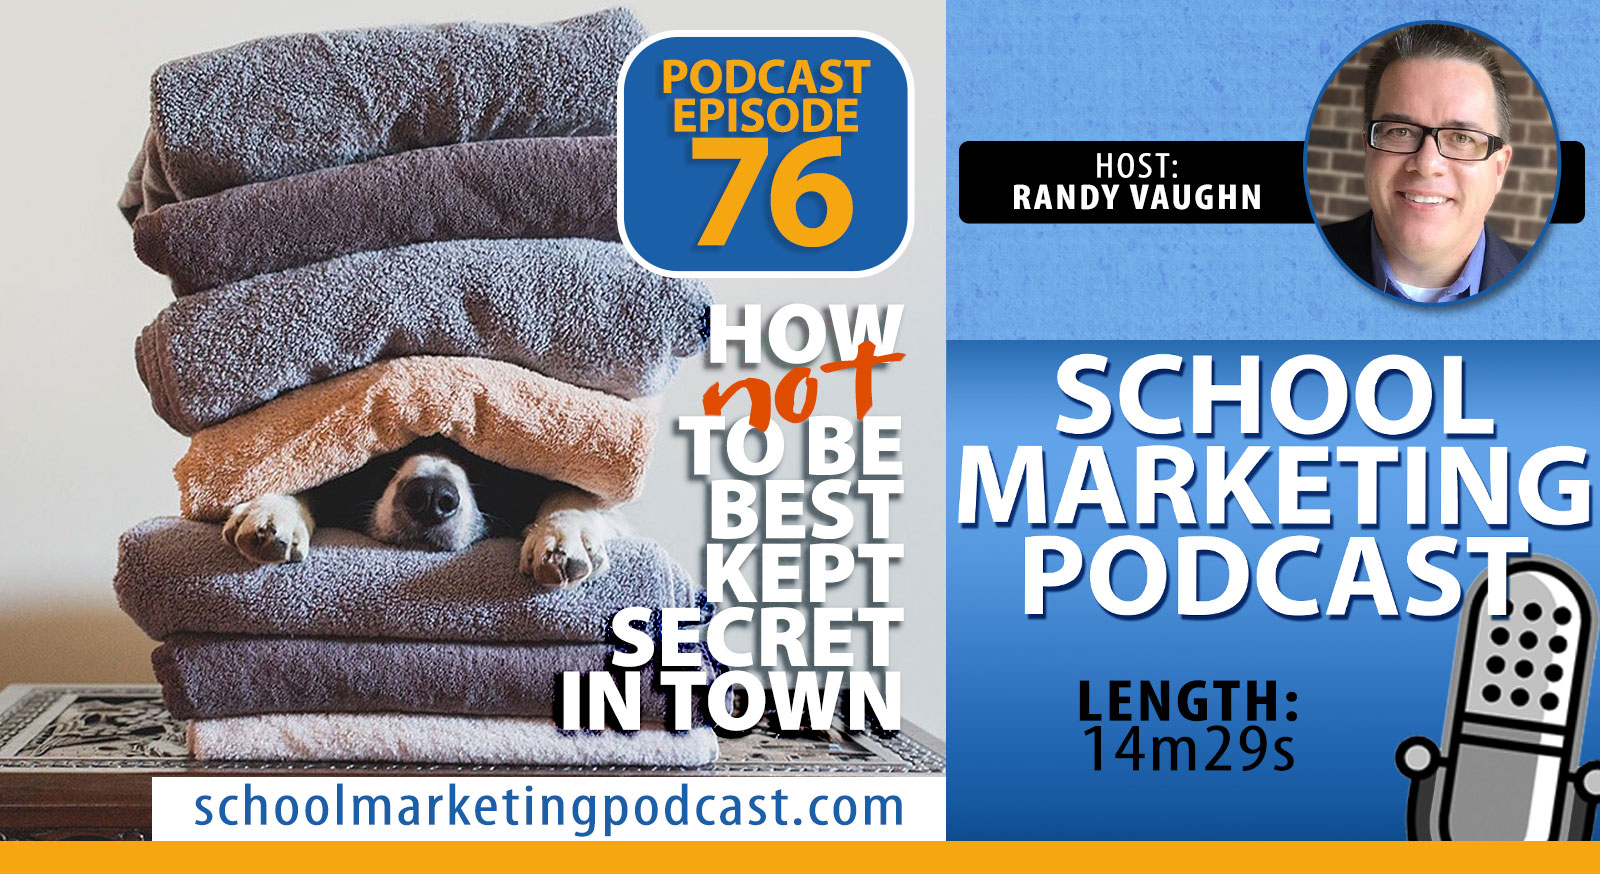 How NOT to be the BEST KEPT SECRET in town (School Marketing Podcast #76)